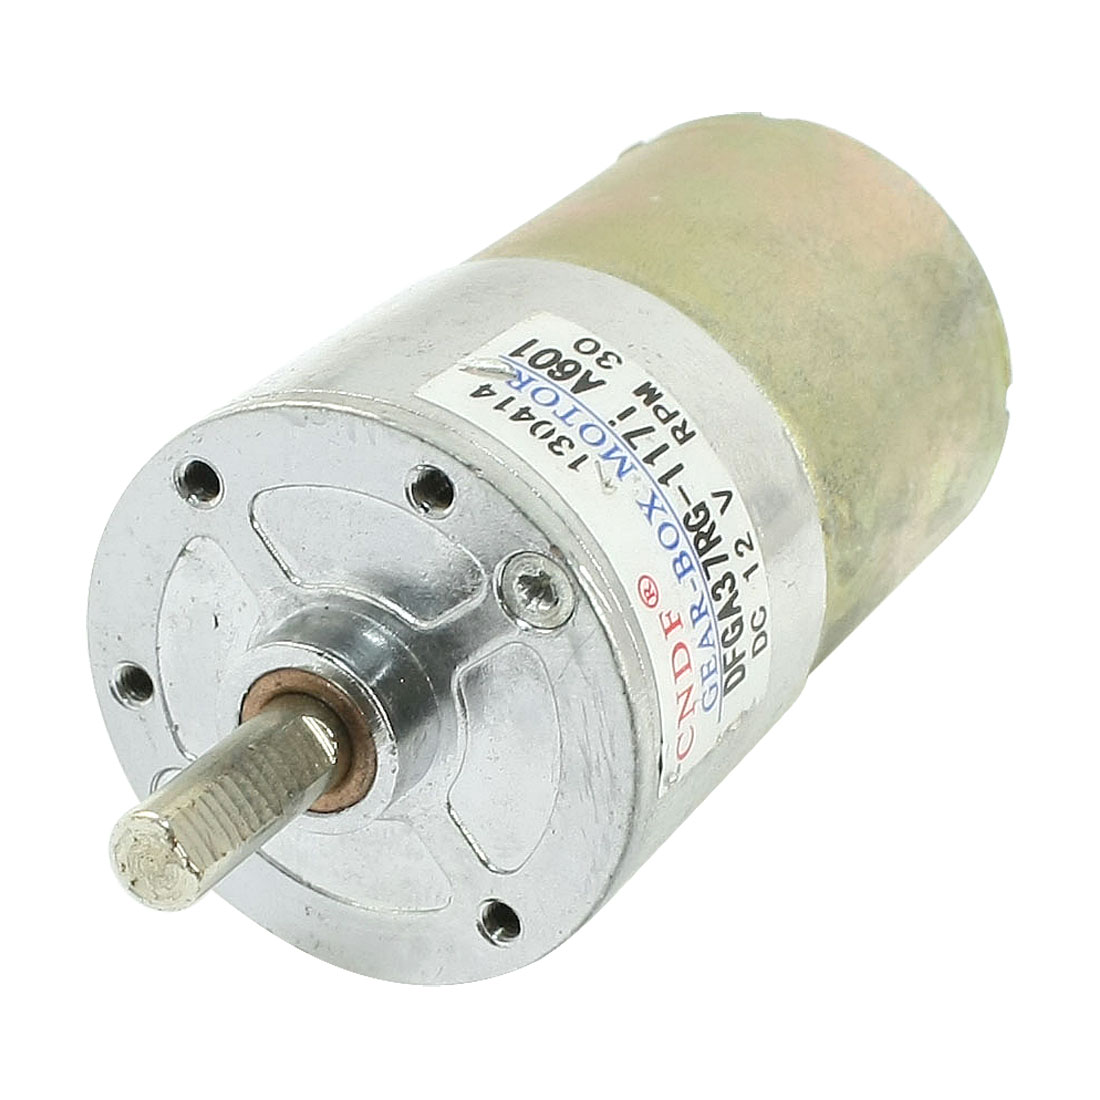 DFGA37RG-117i Cylinder Shape DC12V Speed 30RPM Geared Motor